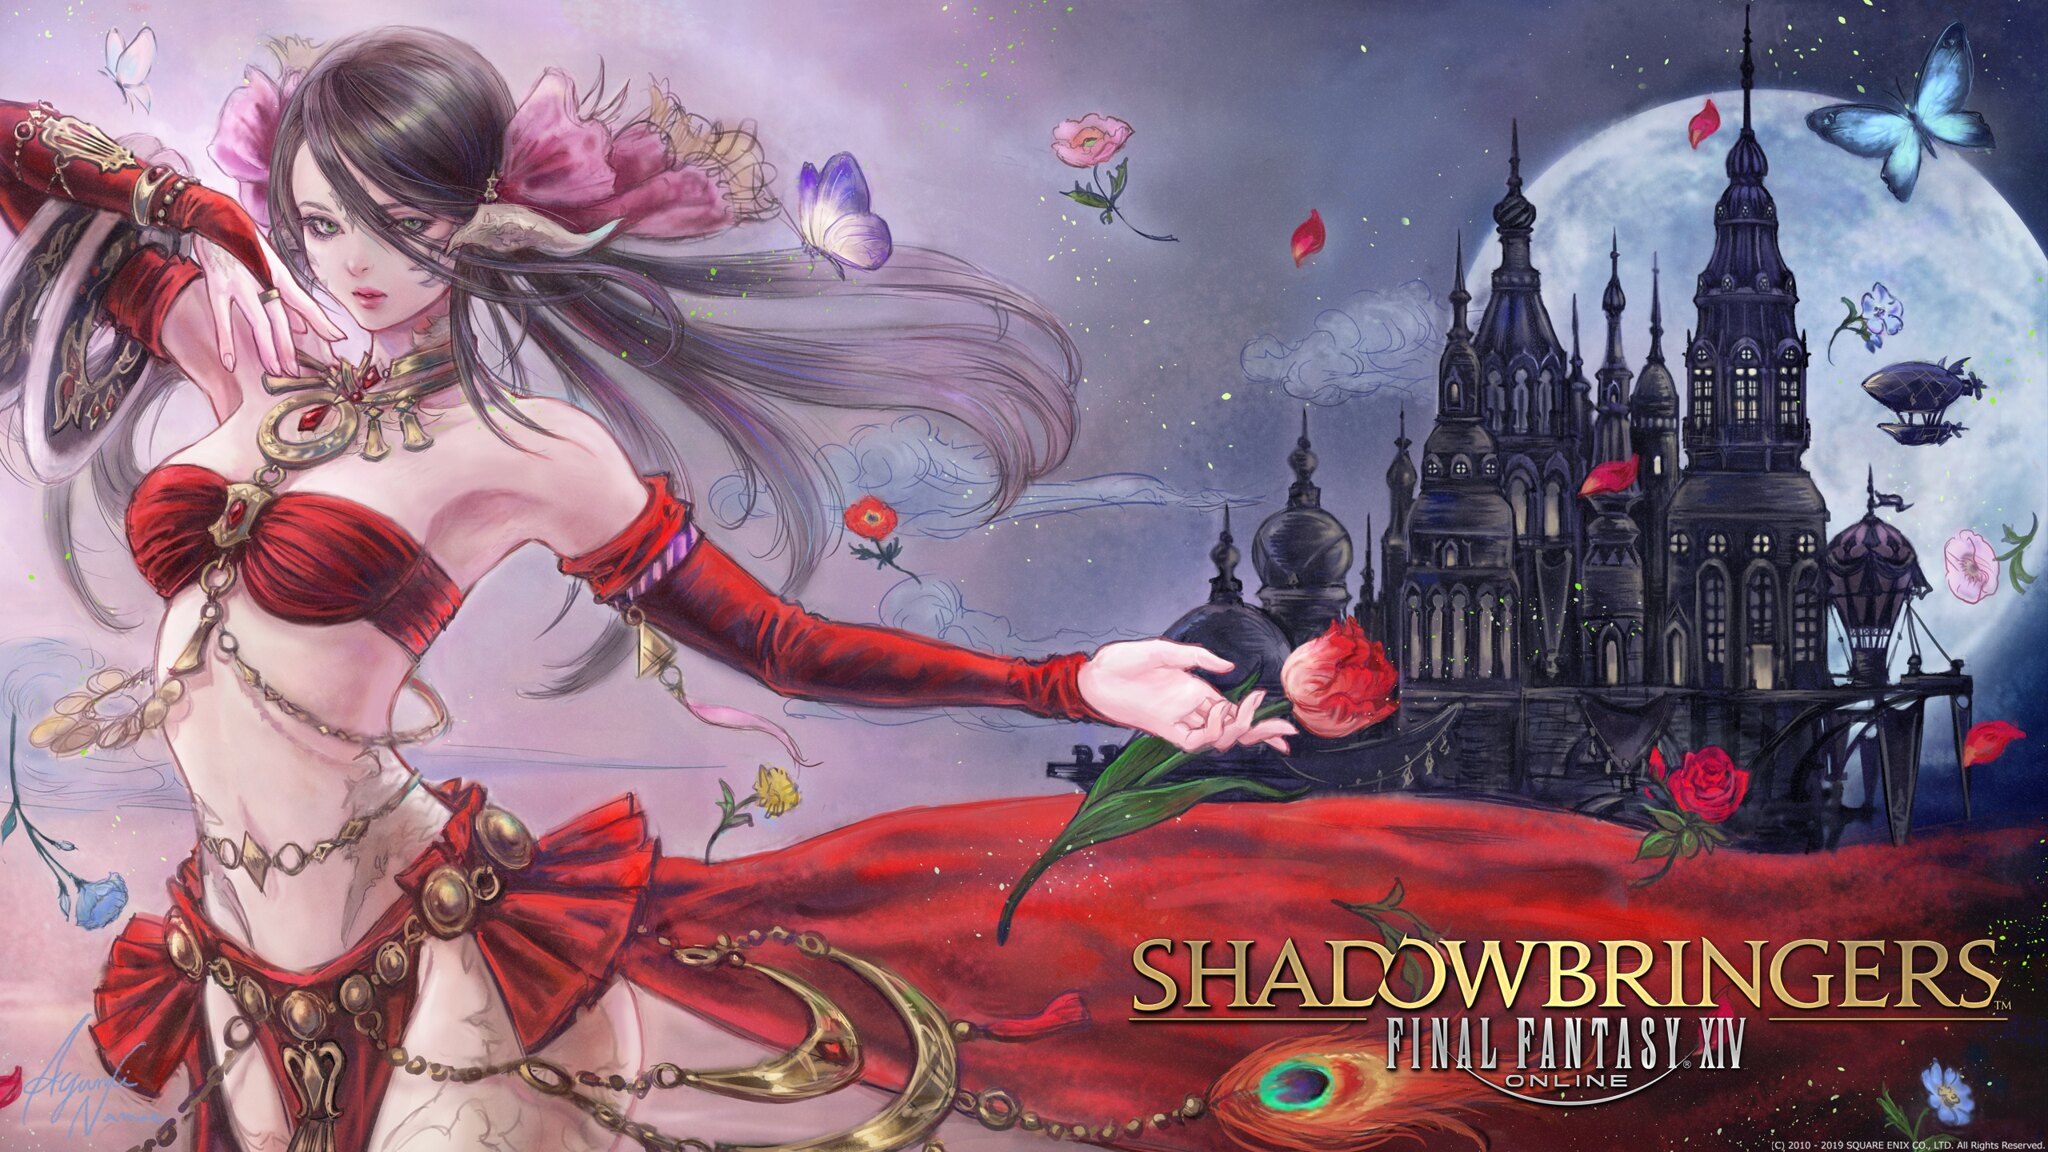 Final Fantasy XIV: Shadowbringers on PS4